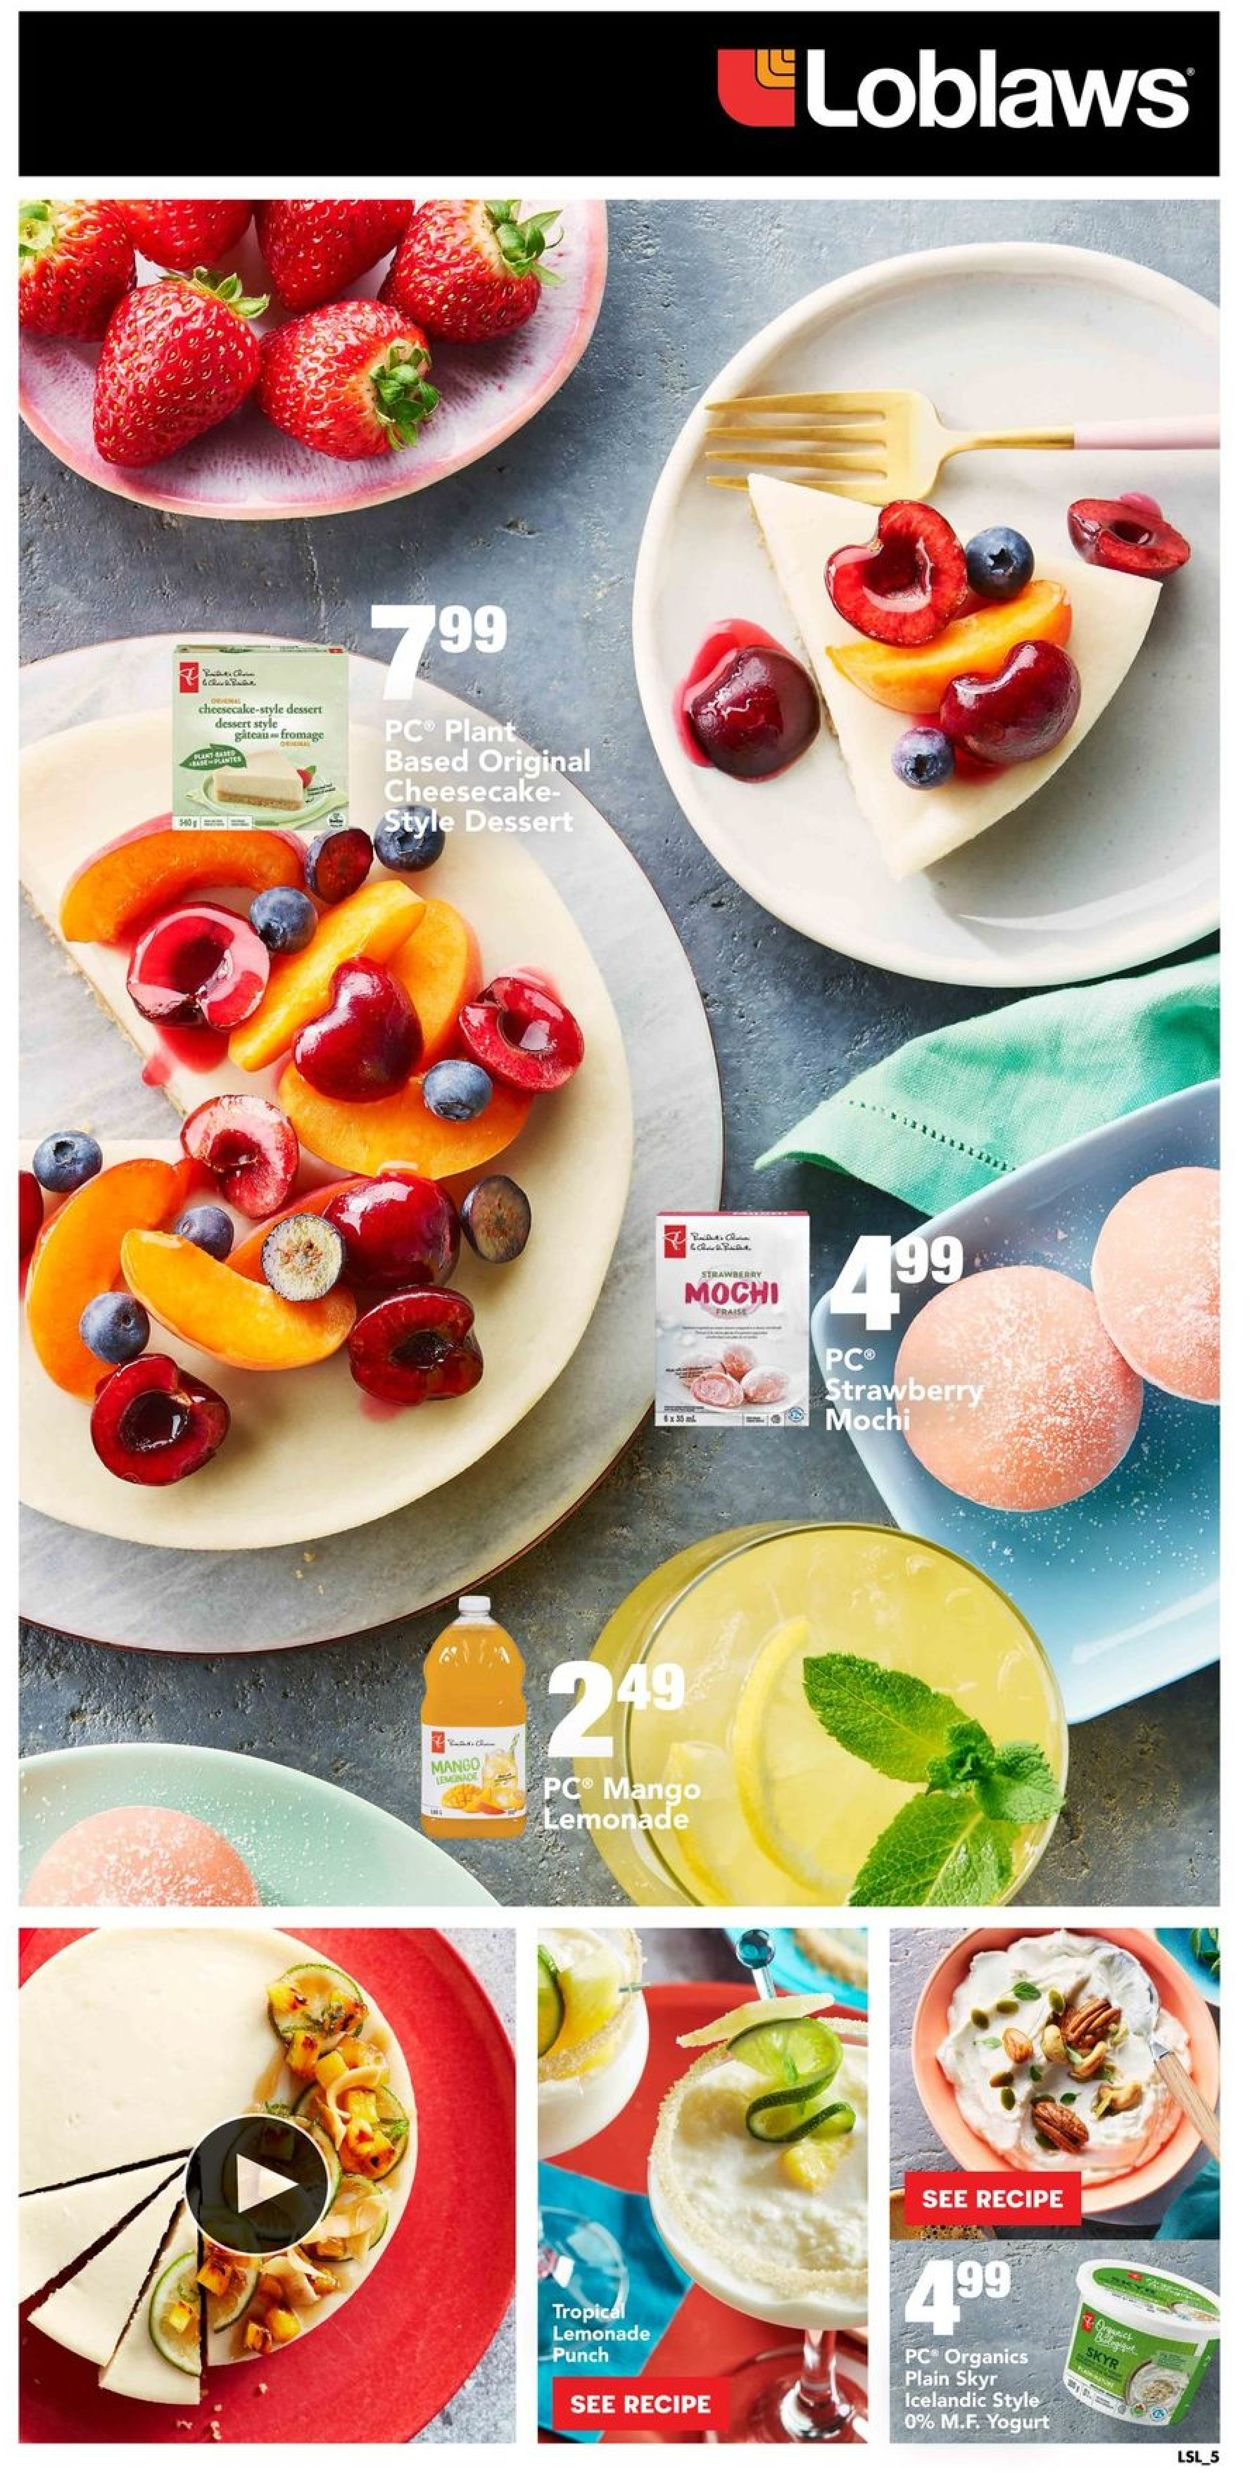 Loblaws Flyer - 05/16-05/22/2019 (Page 5)